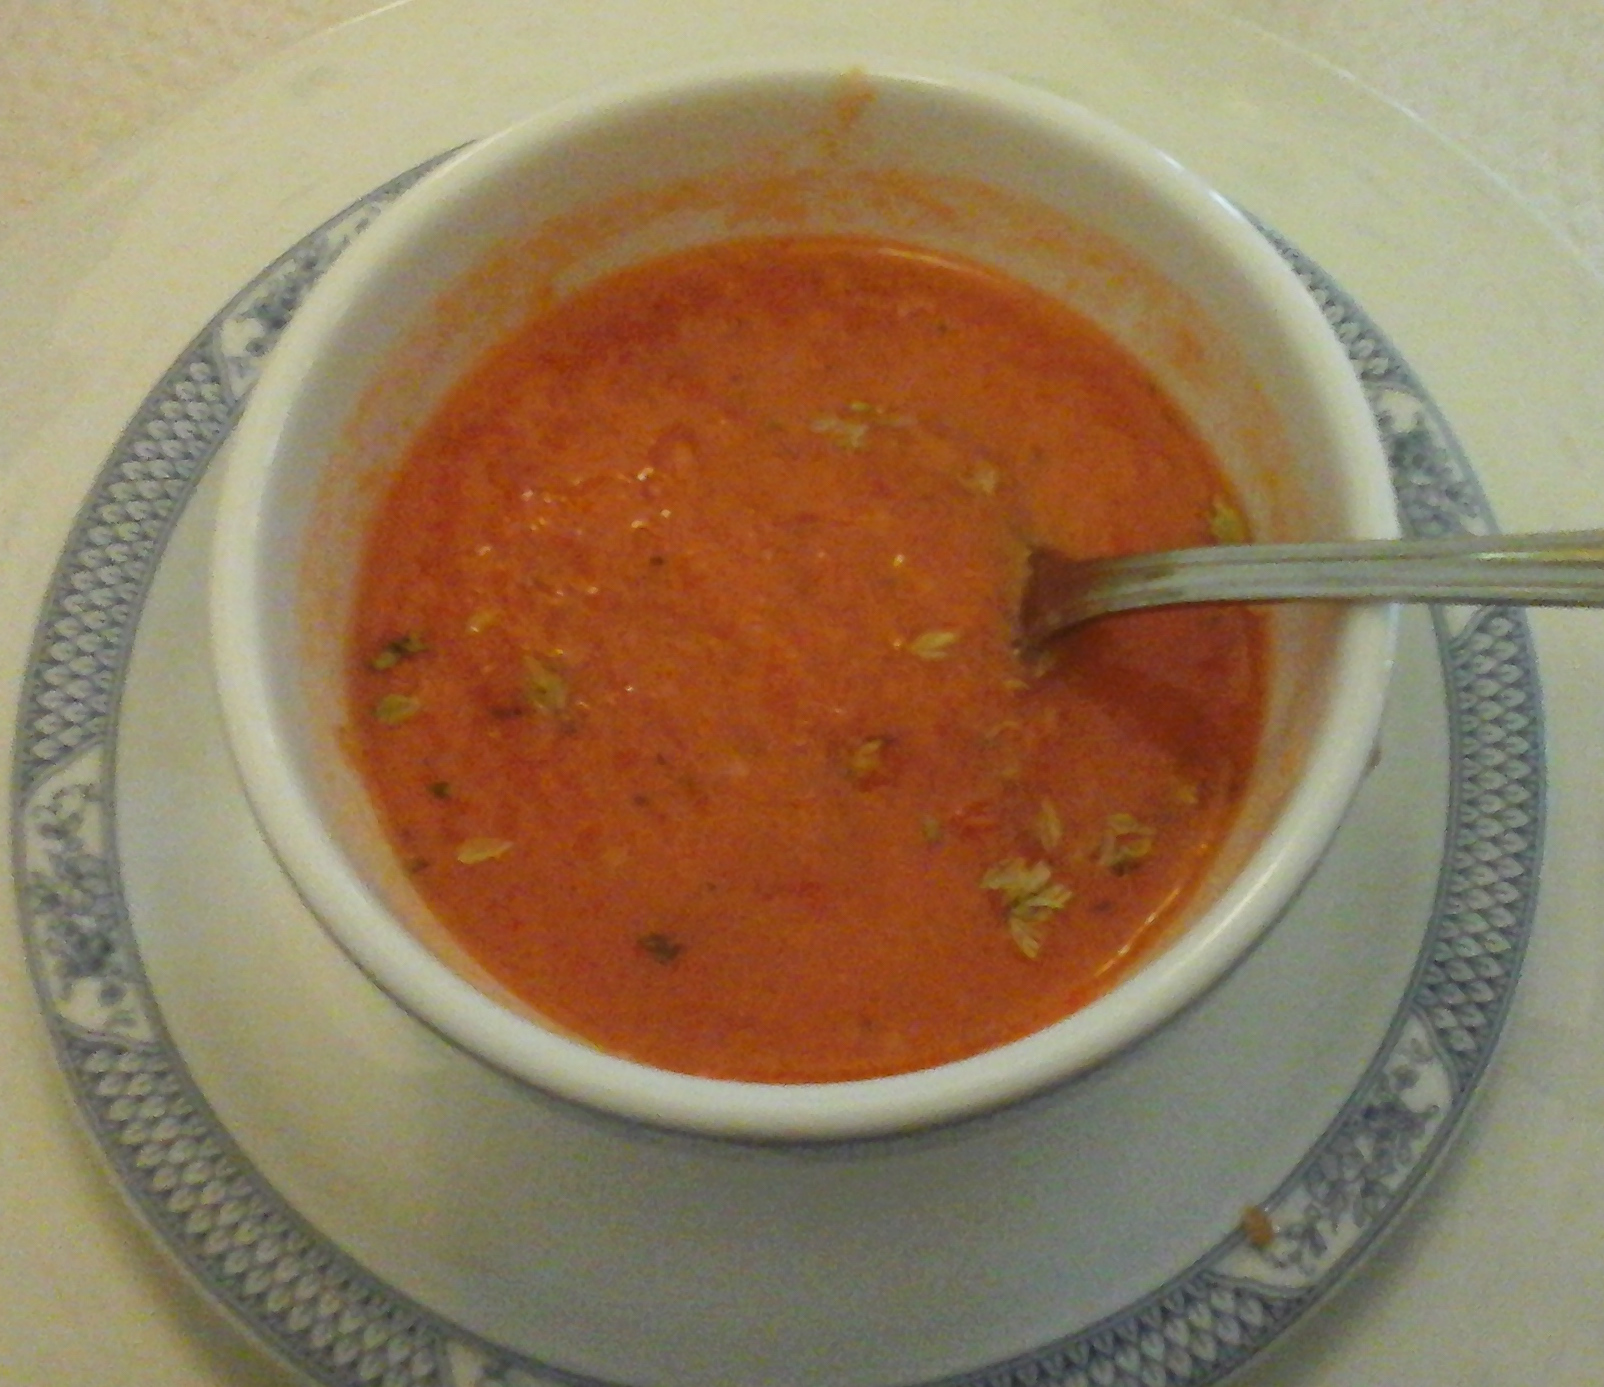 more gaspacho